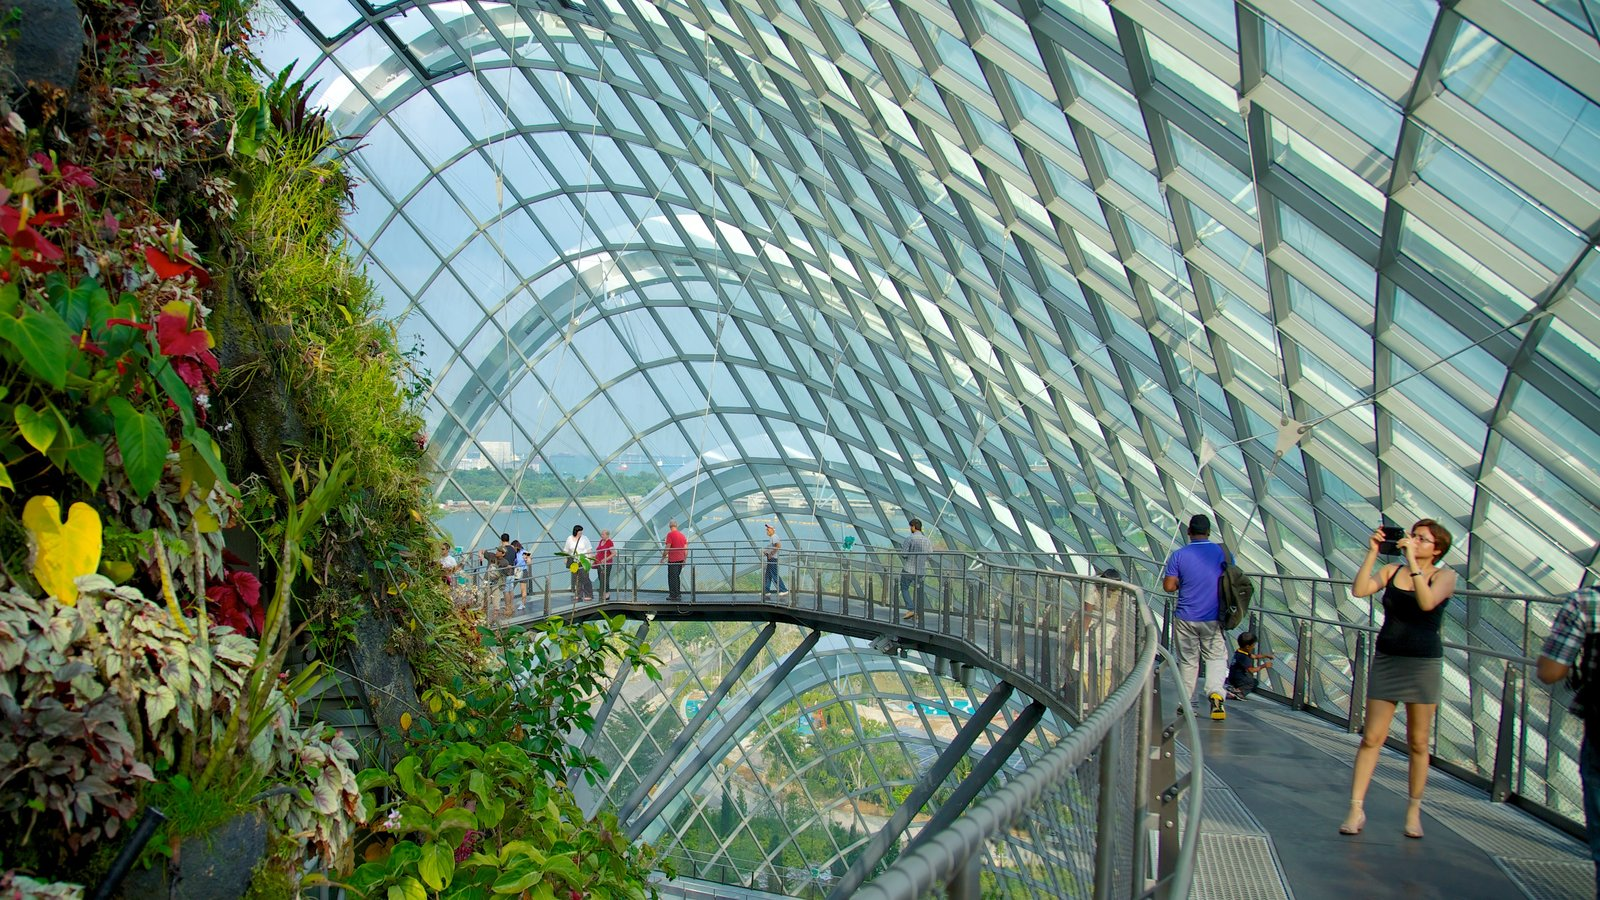 Gardens by the Bay ofreciendo vistas interiores, arquitectura moderna y un jardín